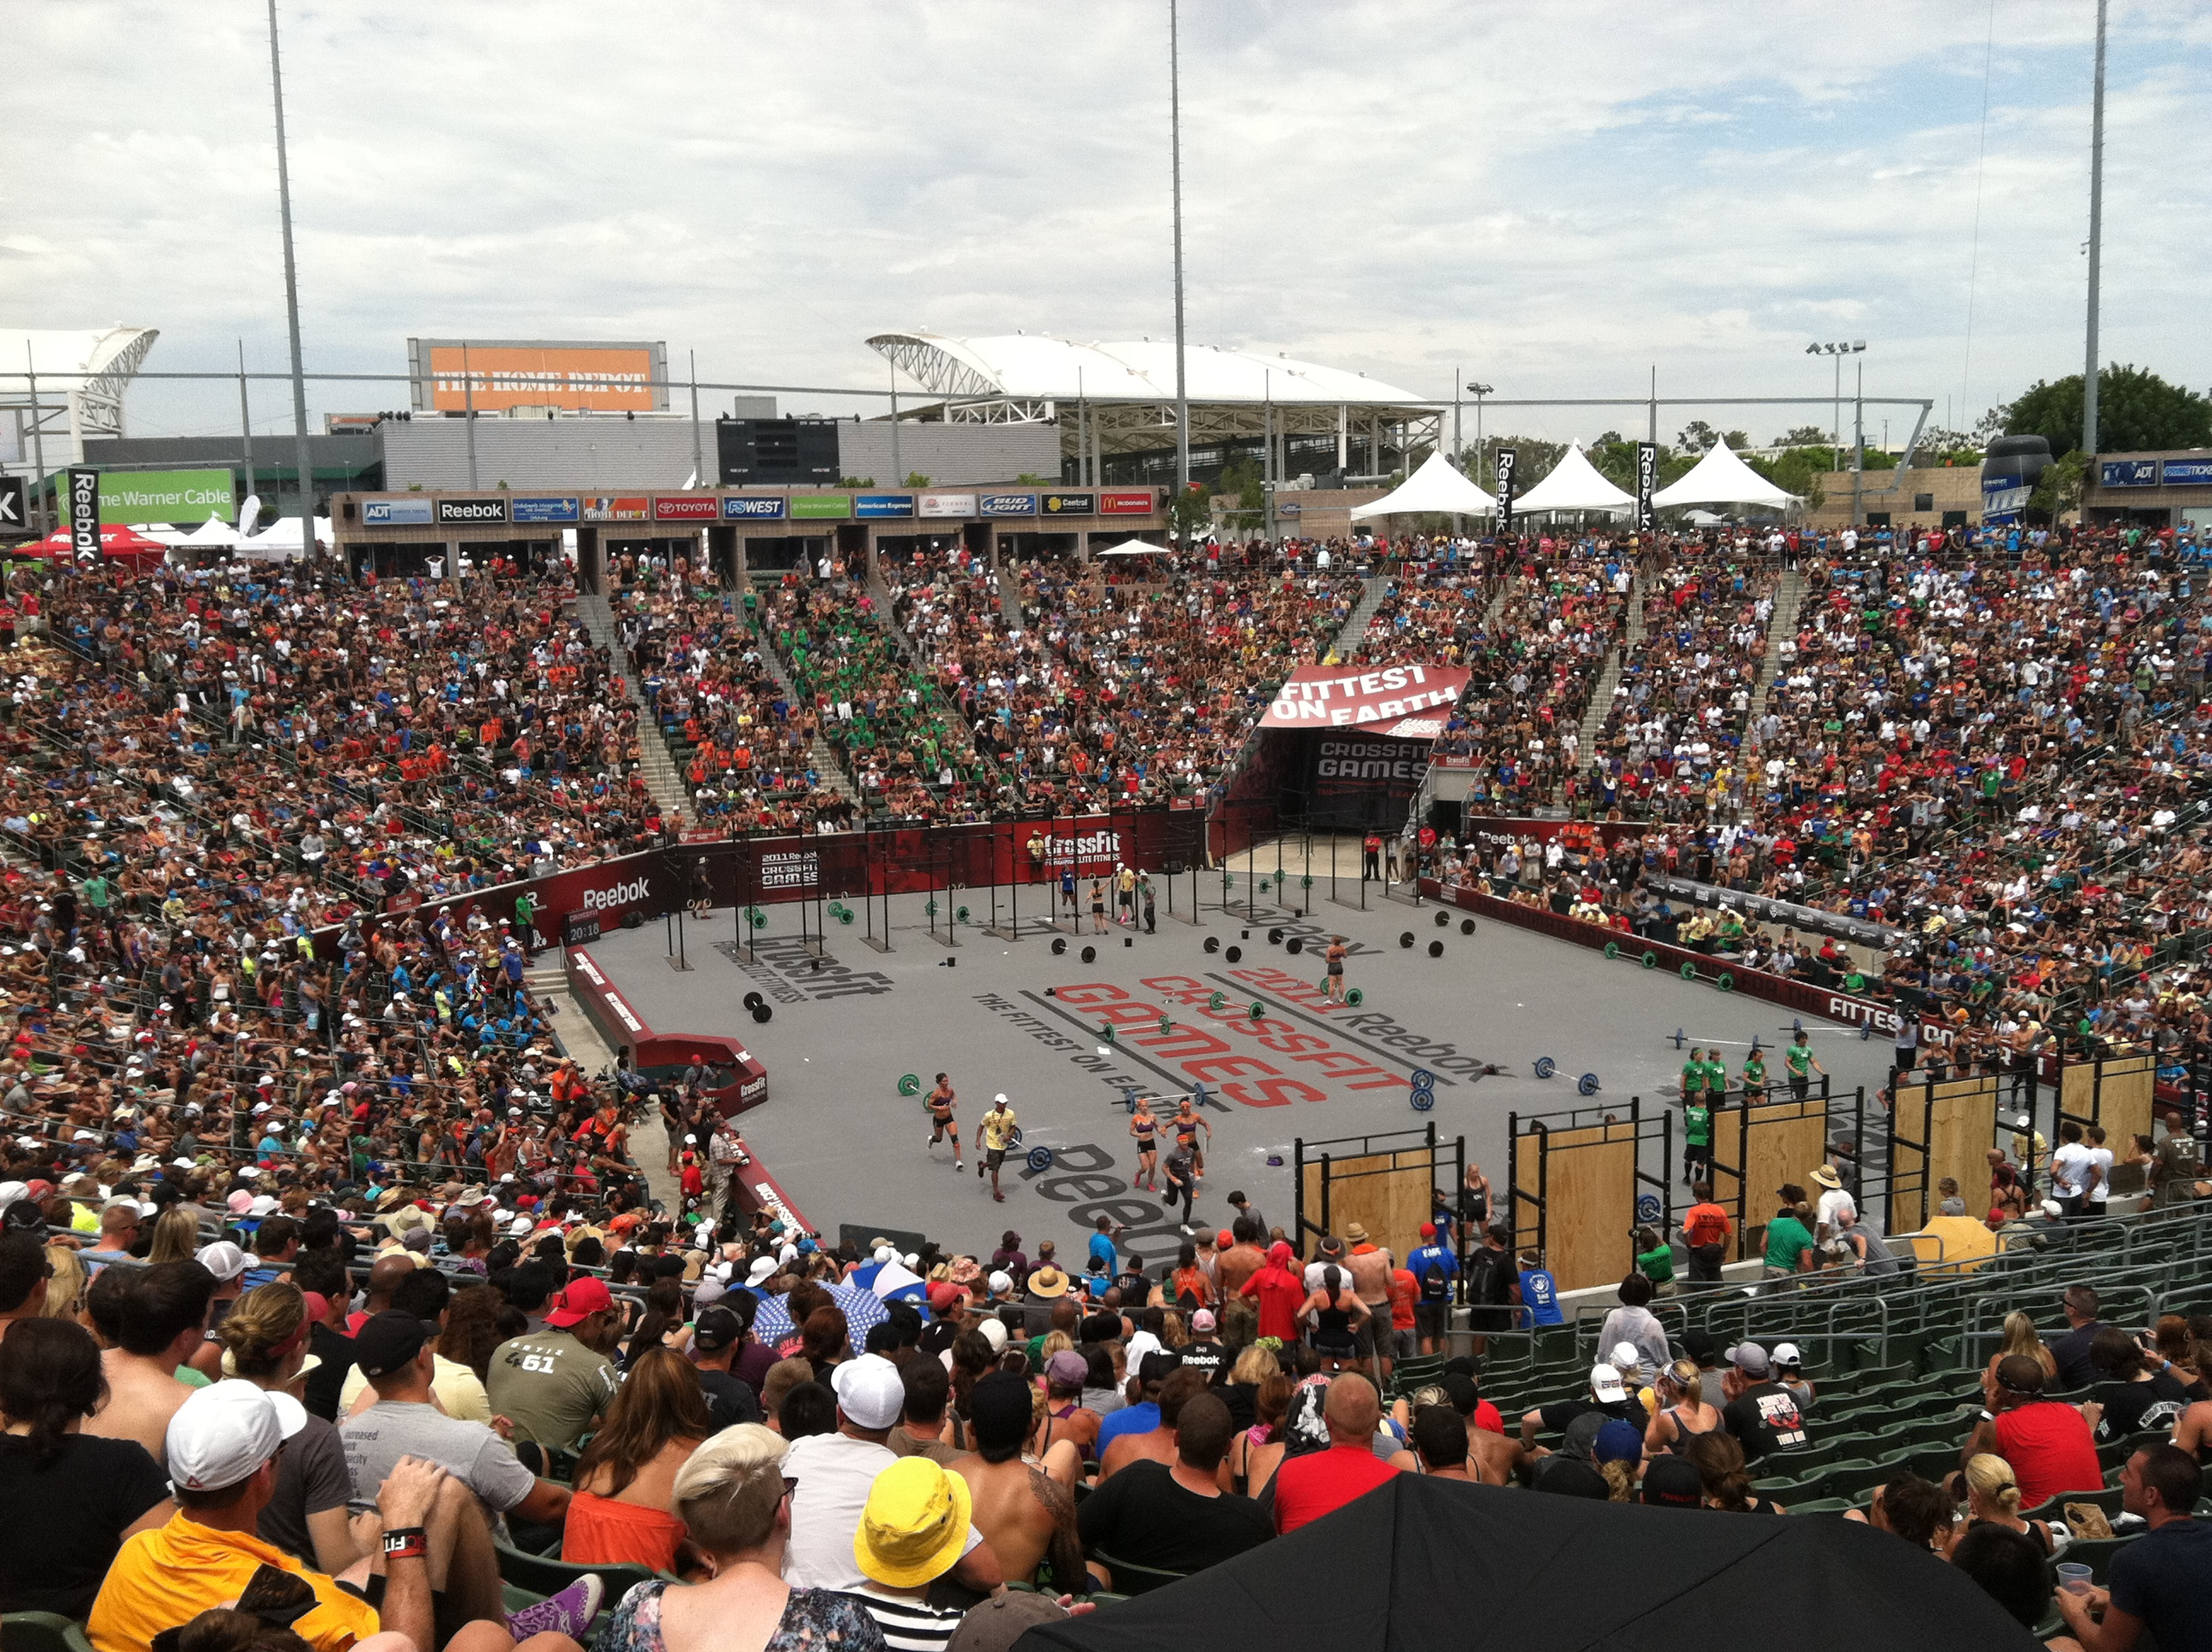 The 2011 Crossfit Games